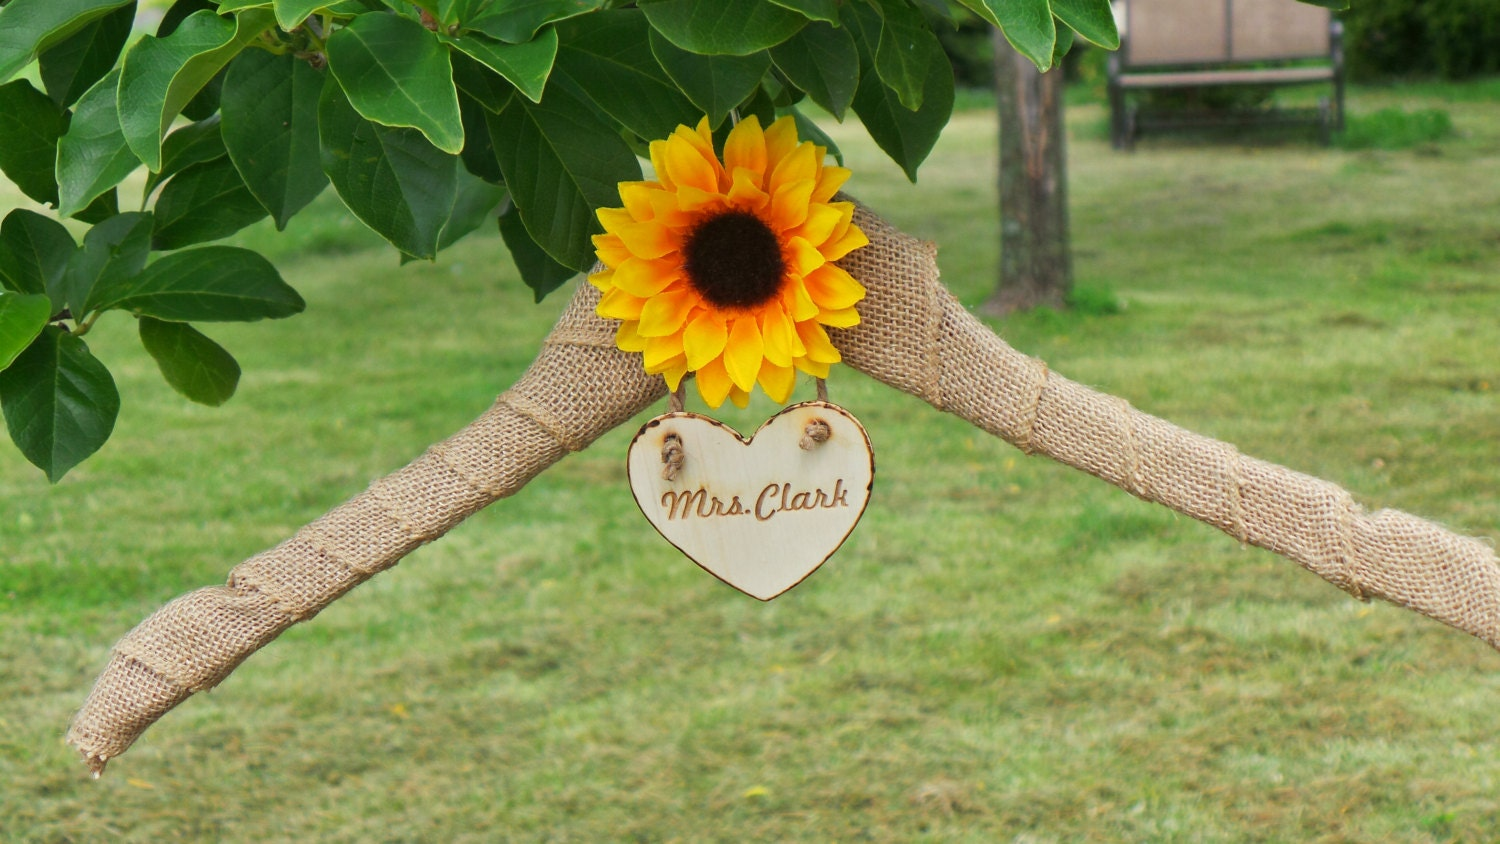 Gift For Daughter In Law Birthday Sunflower Ideas Personalized Hanger